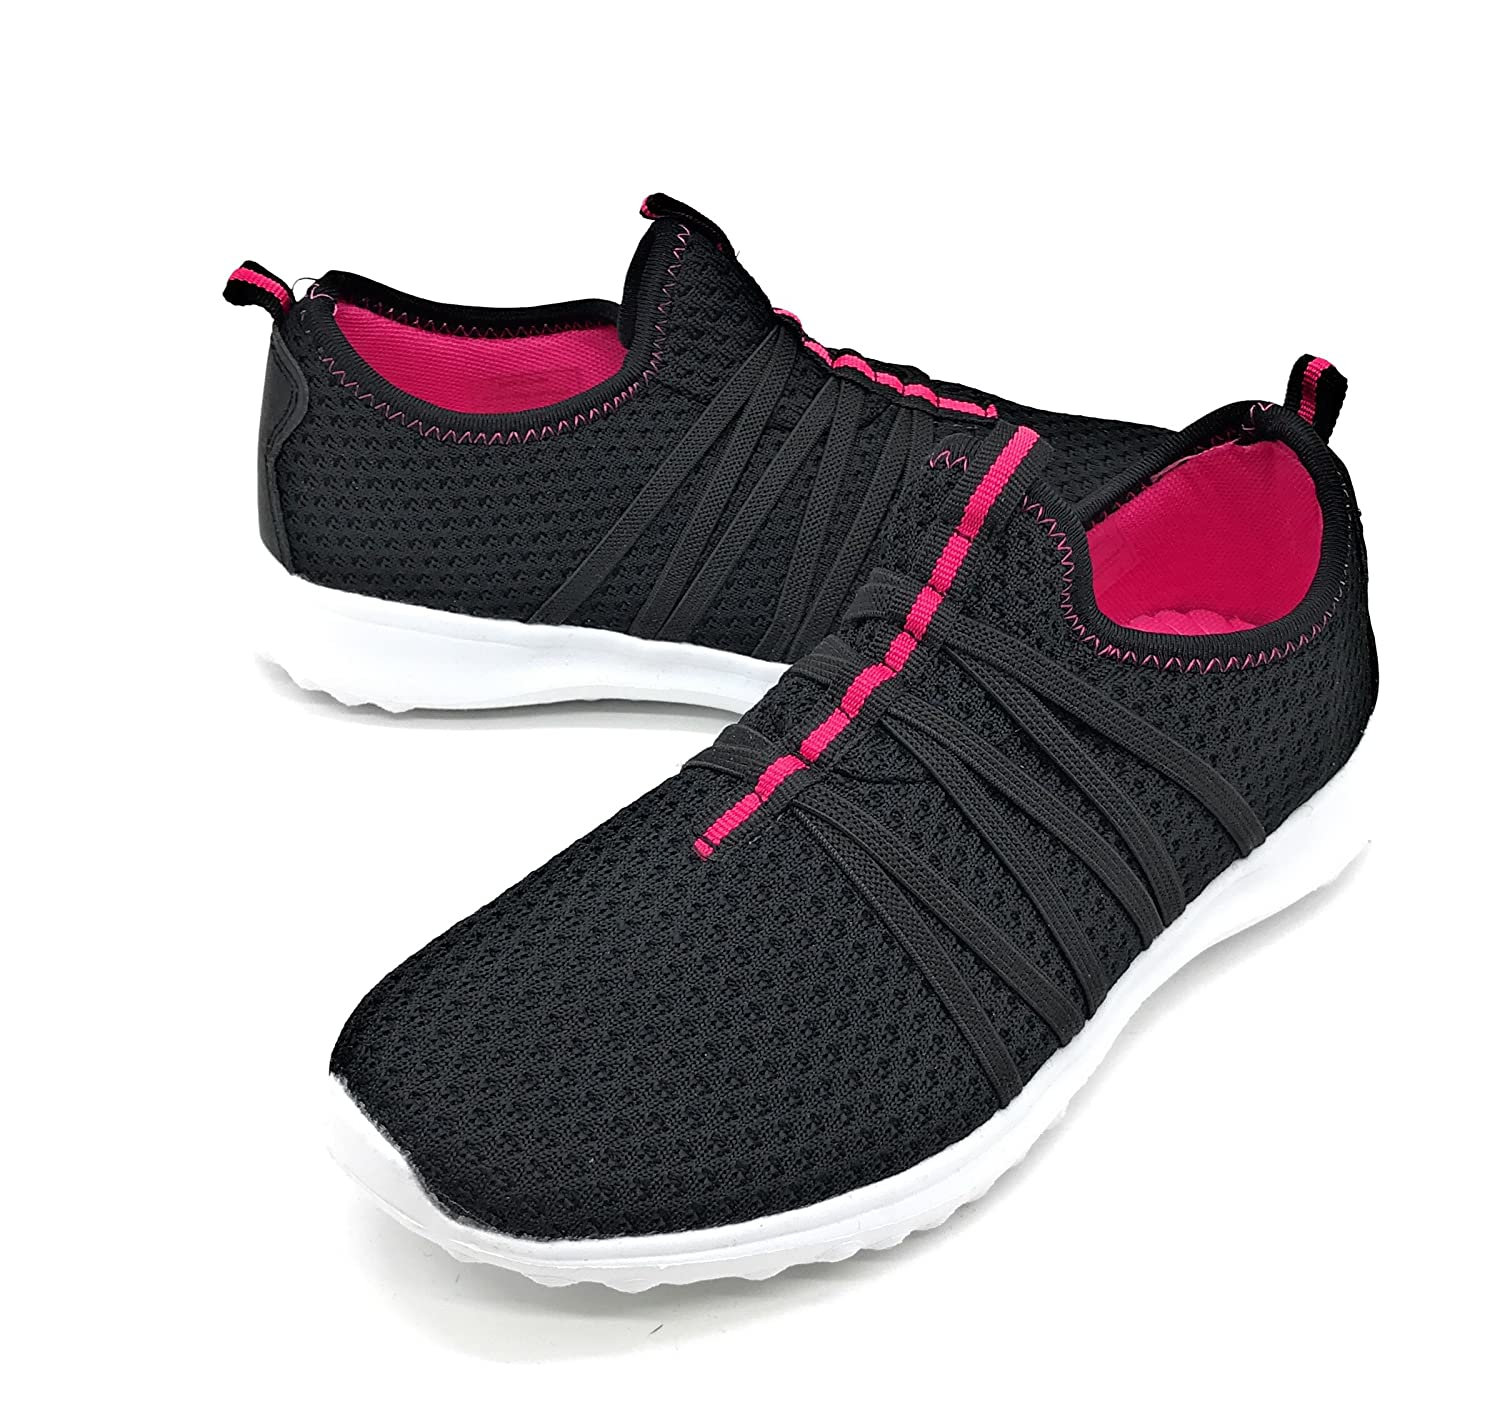 Blue Berry EASY21 Women Casual Fashion Sneakers Breathable Athletic Sports Light Weight Shoes B079VQQHK3 6 B(M) US|Black01